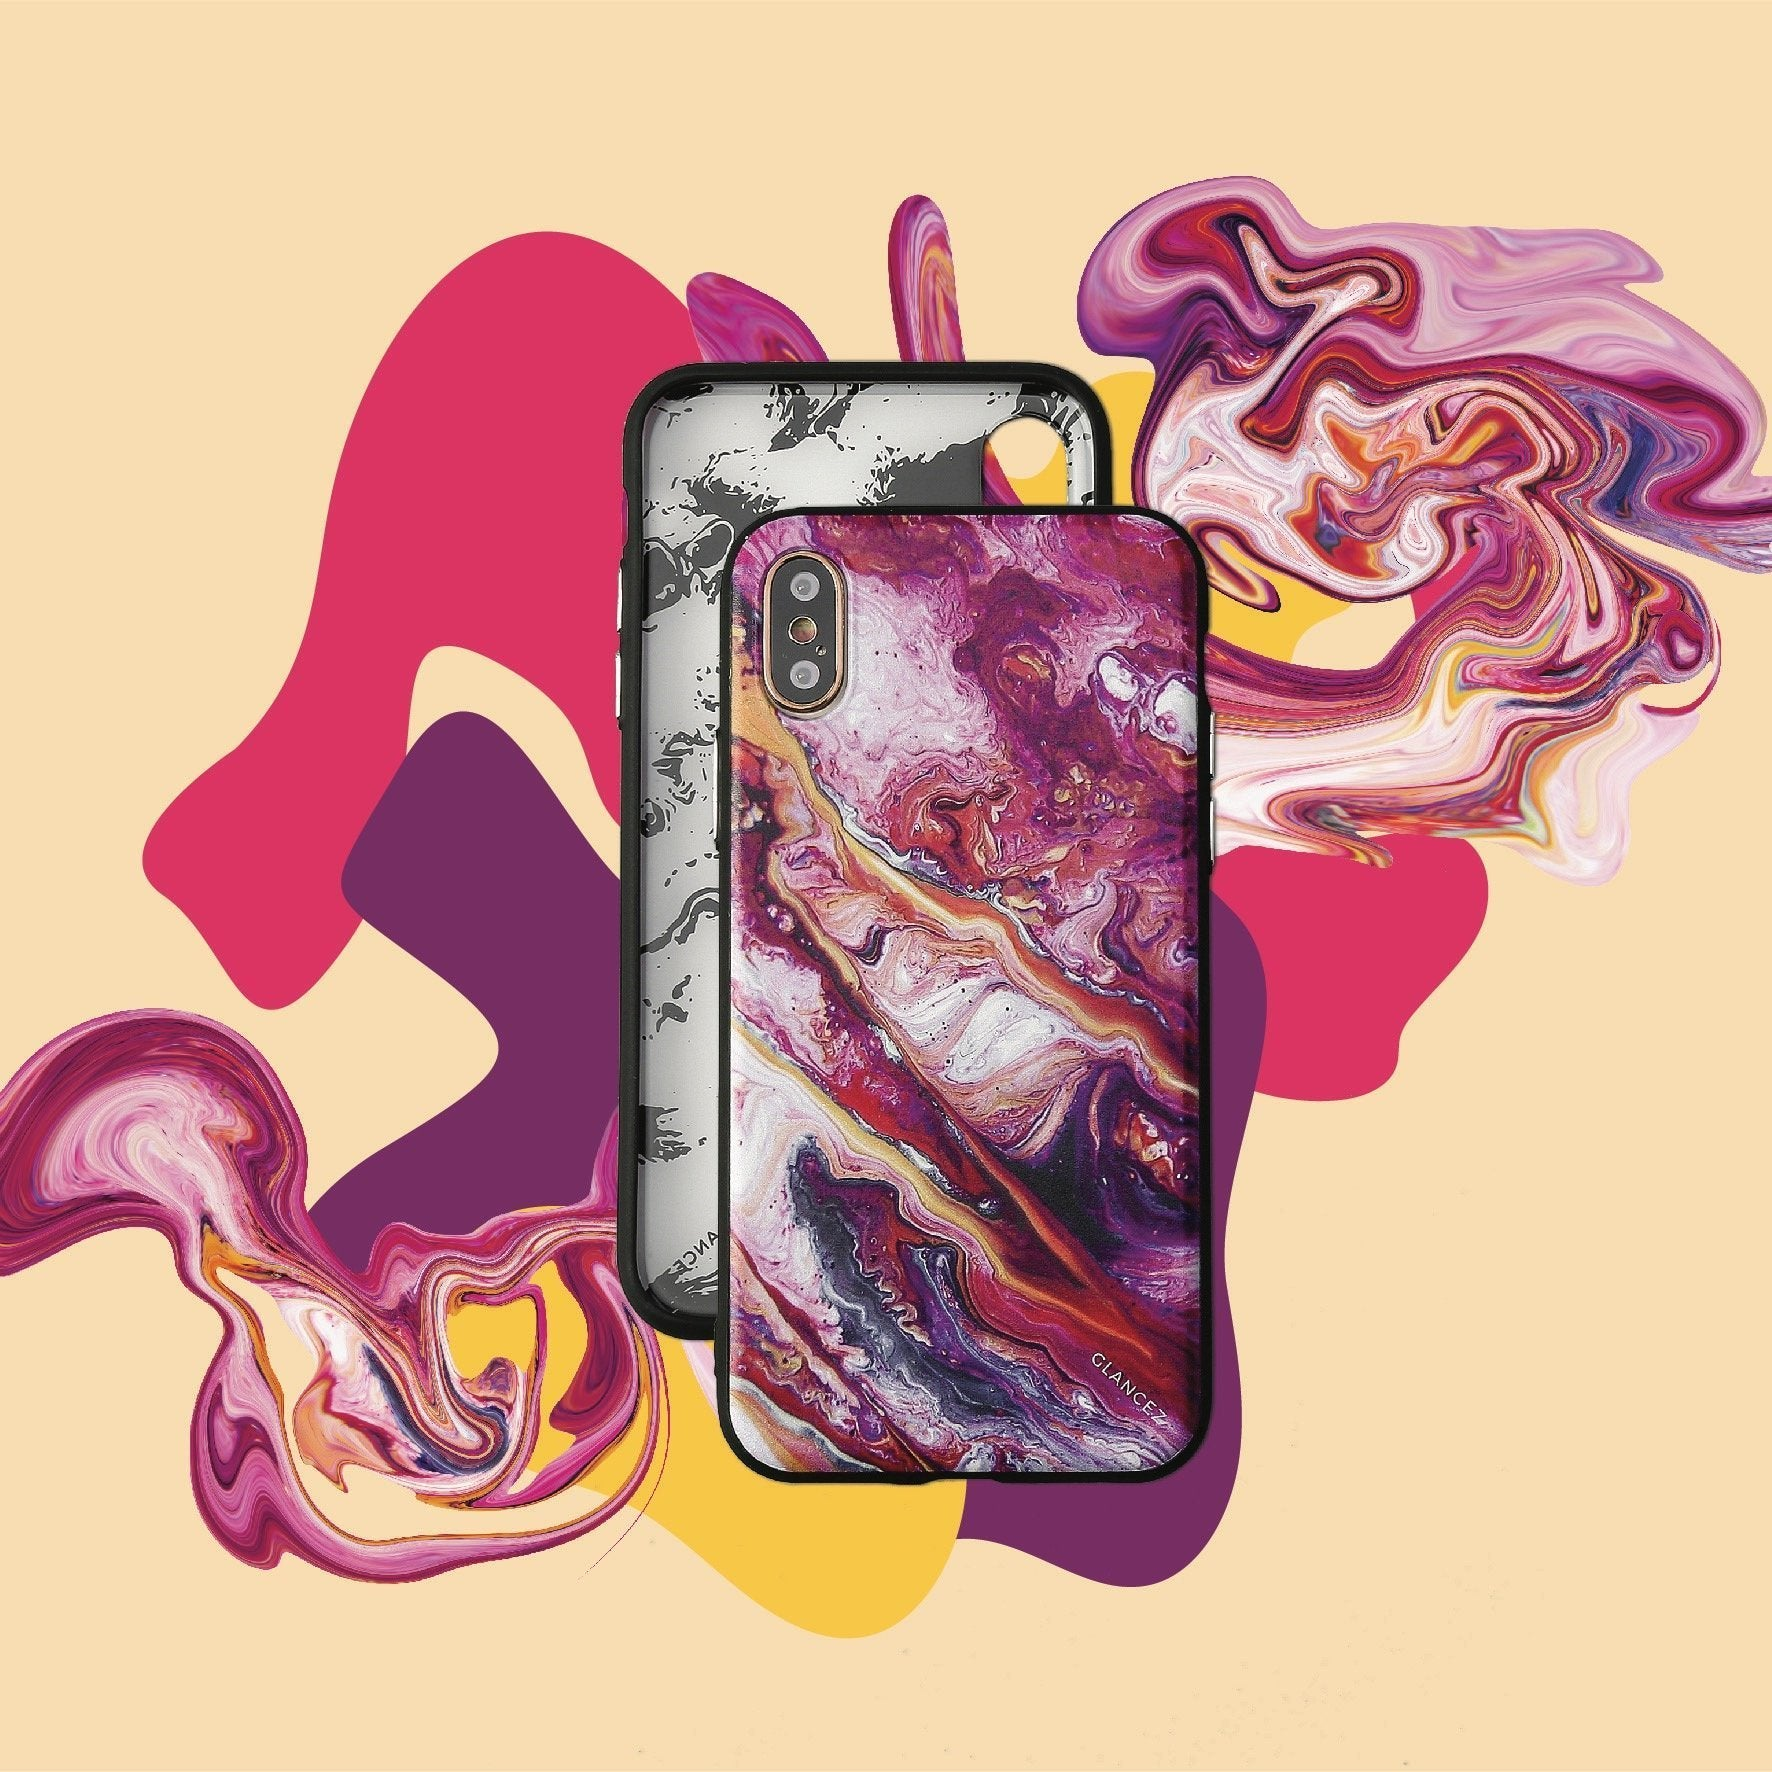 Original Pink Fluid Art iPhone Case - TRINQUETZ